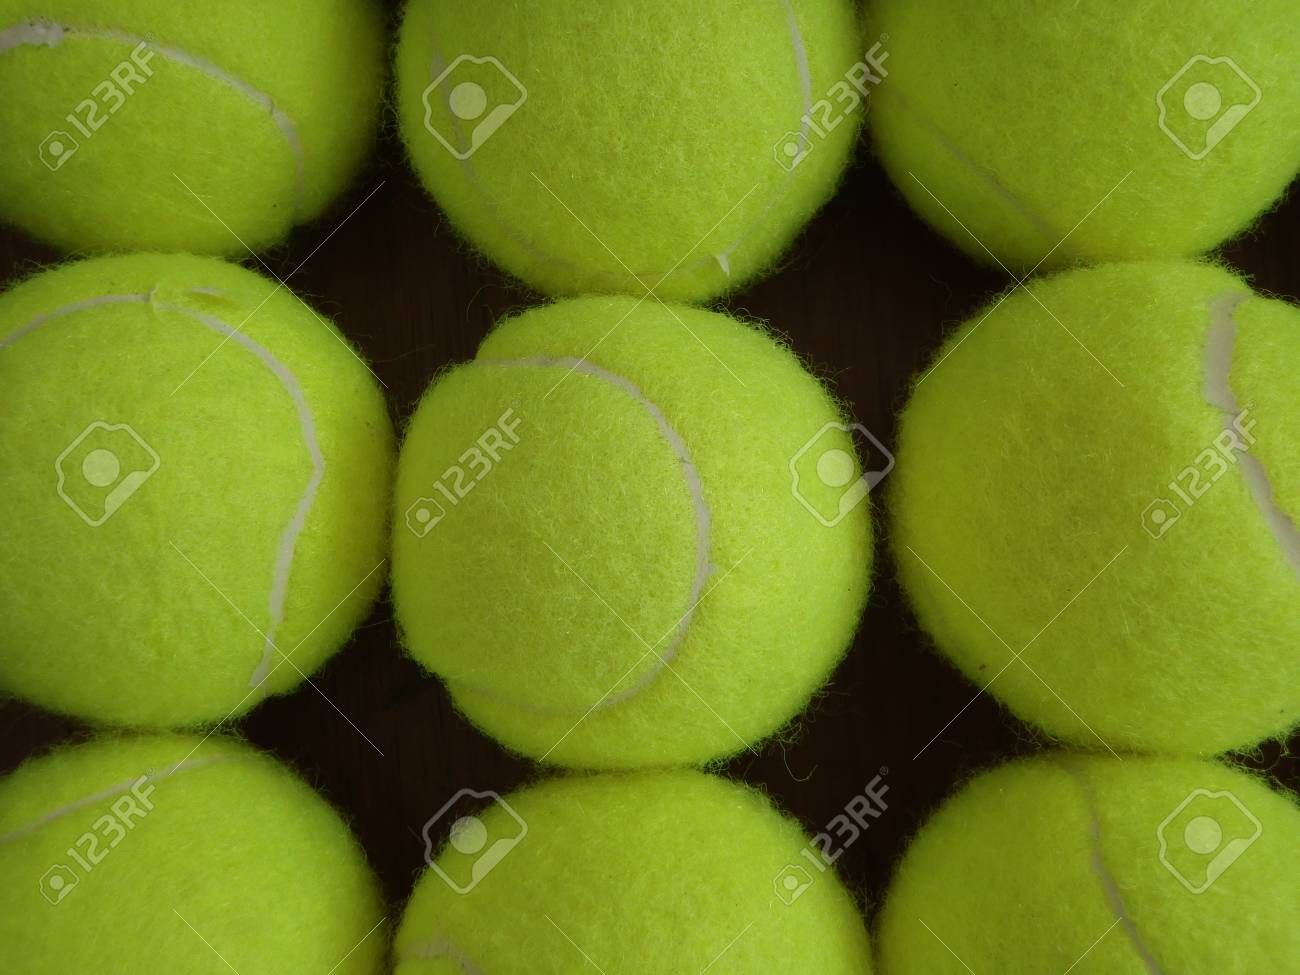 Tennis Ball Background Stock Photo Picture And Royalty Free Image